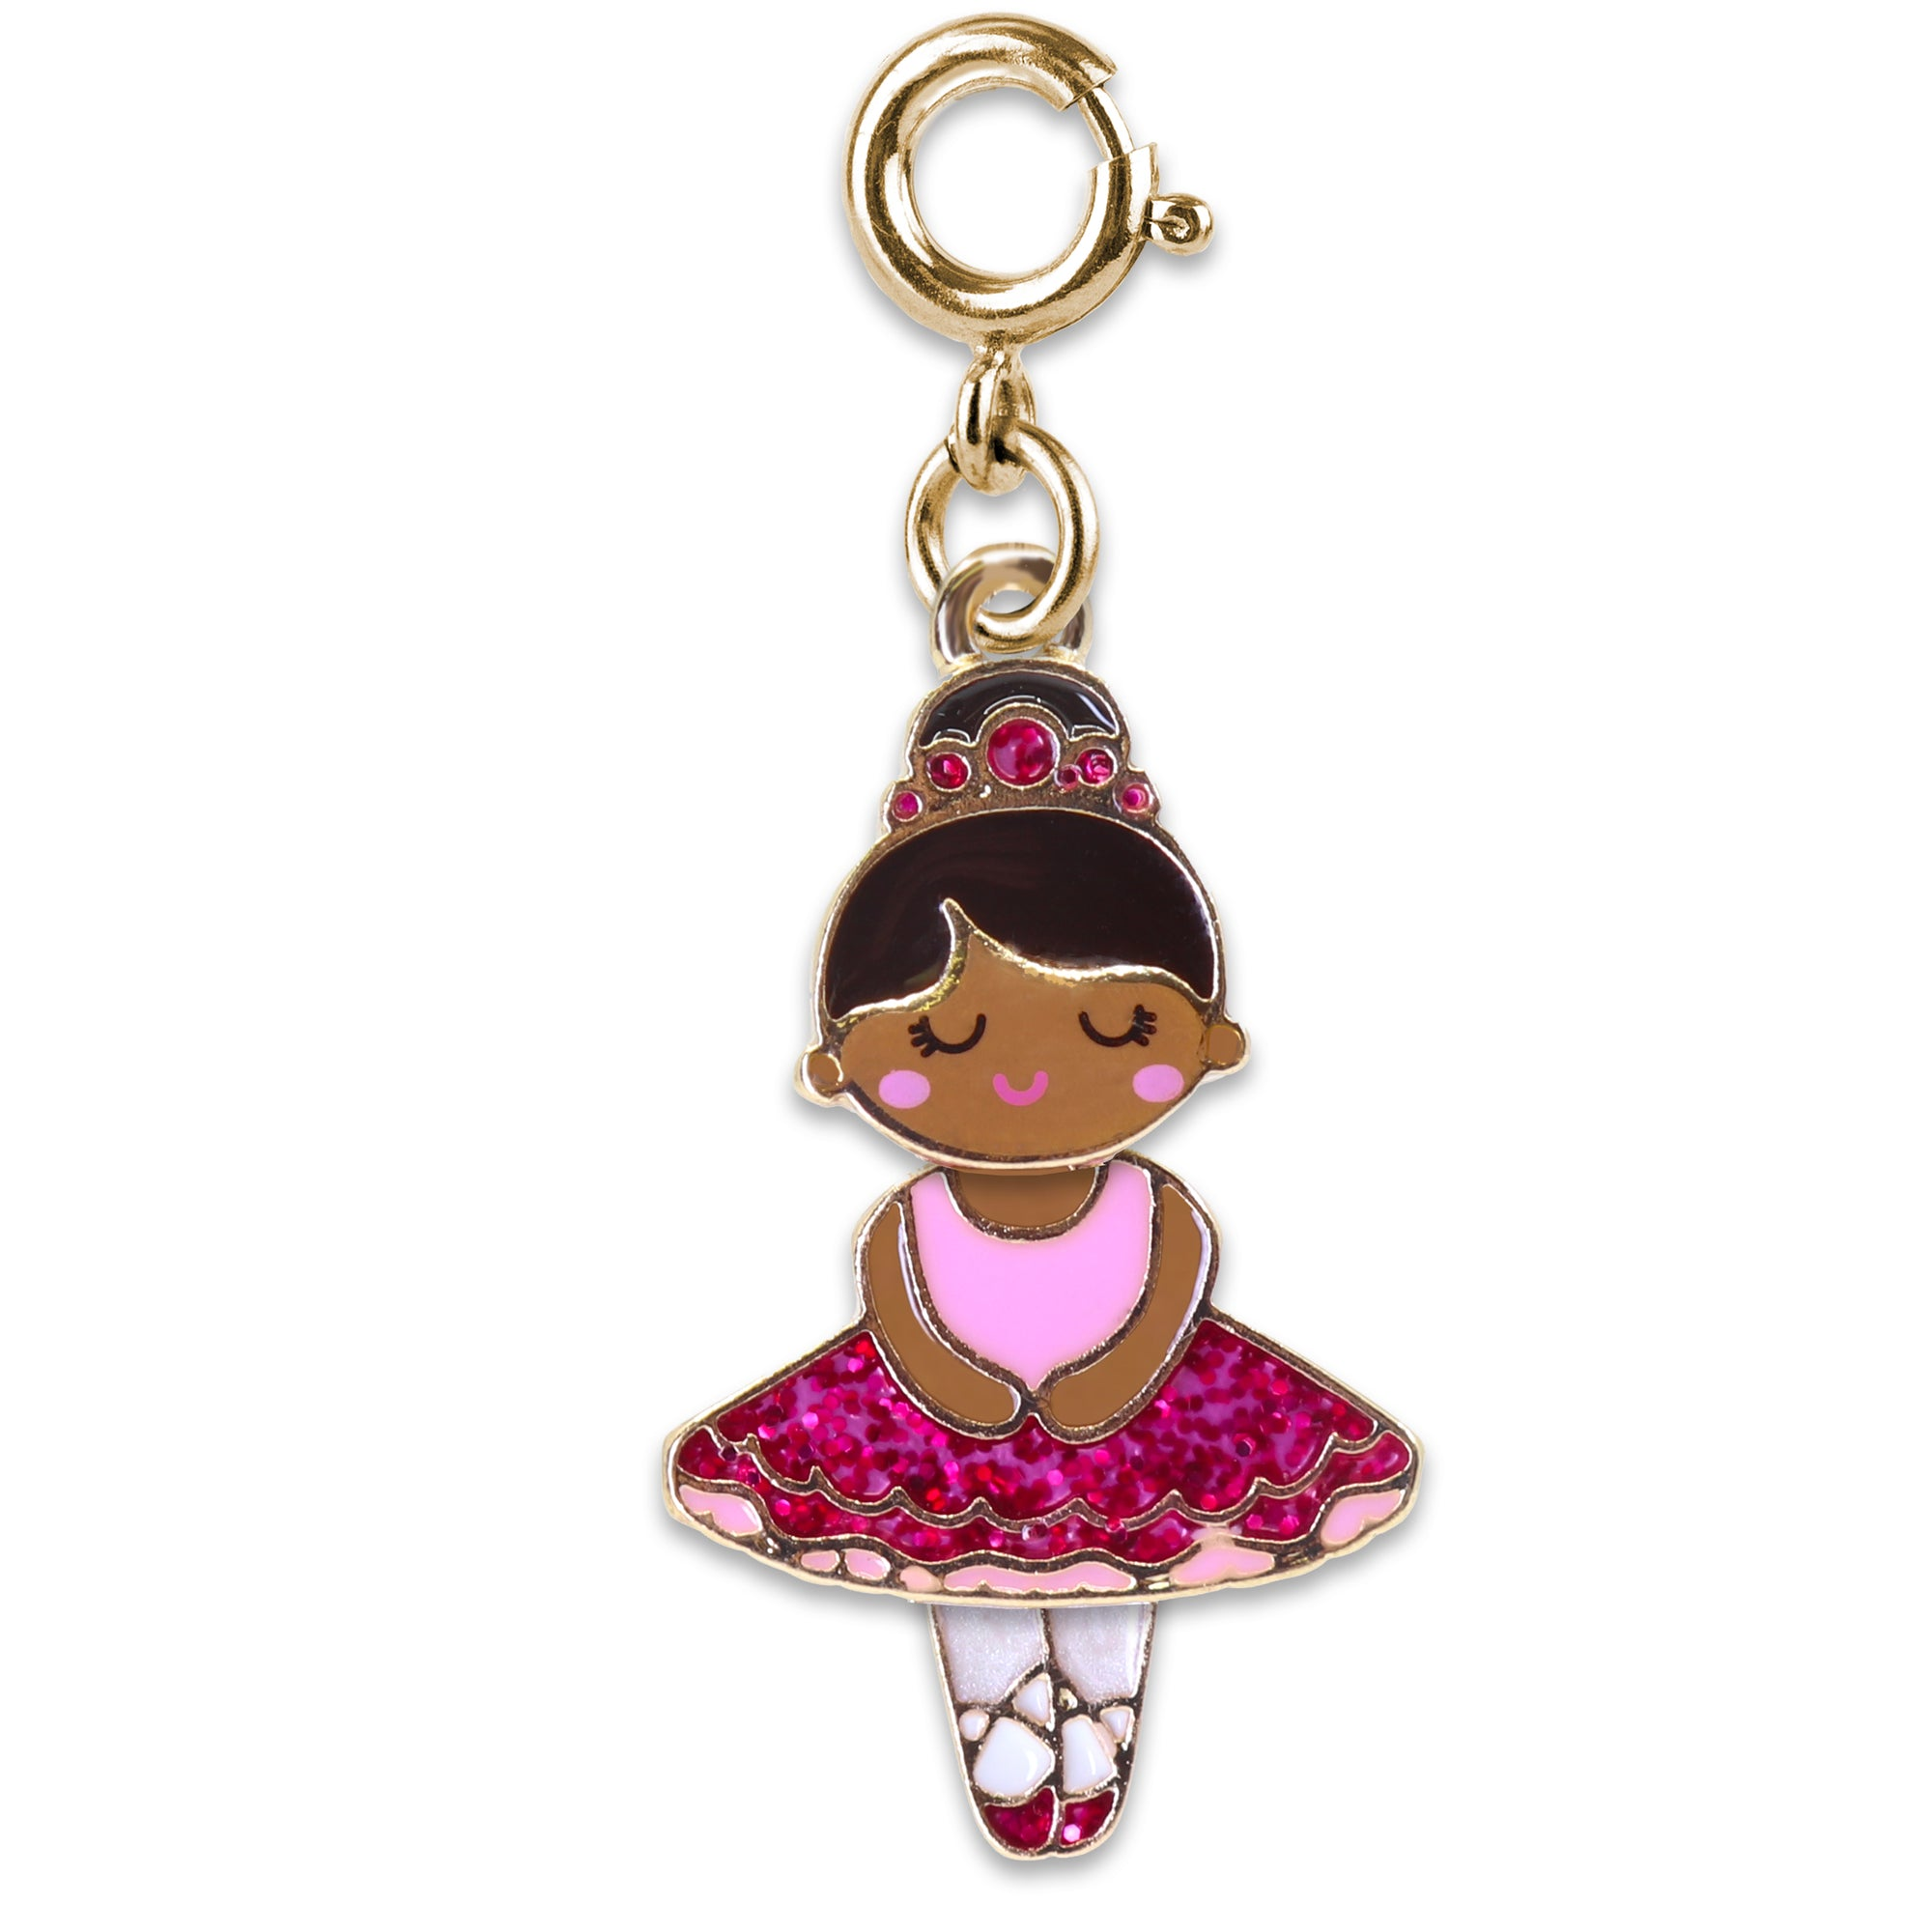 Shop Gold Swivel Ballerina Charm (Pink)